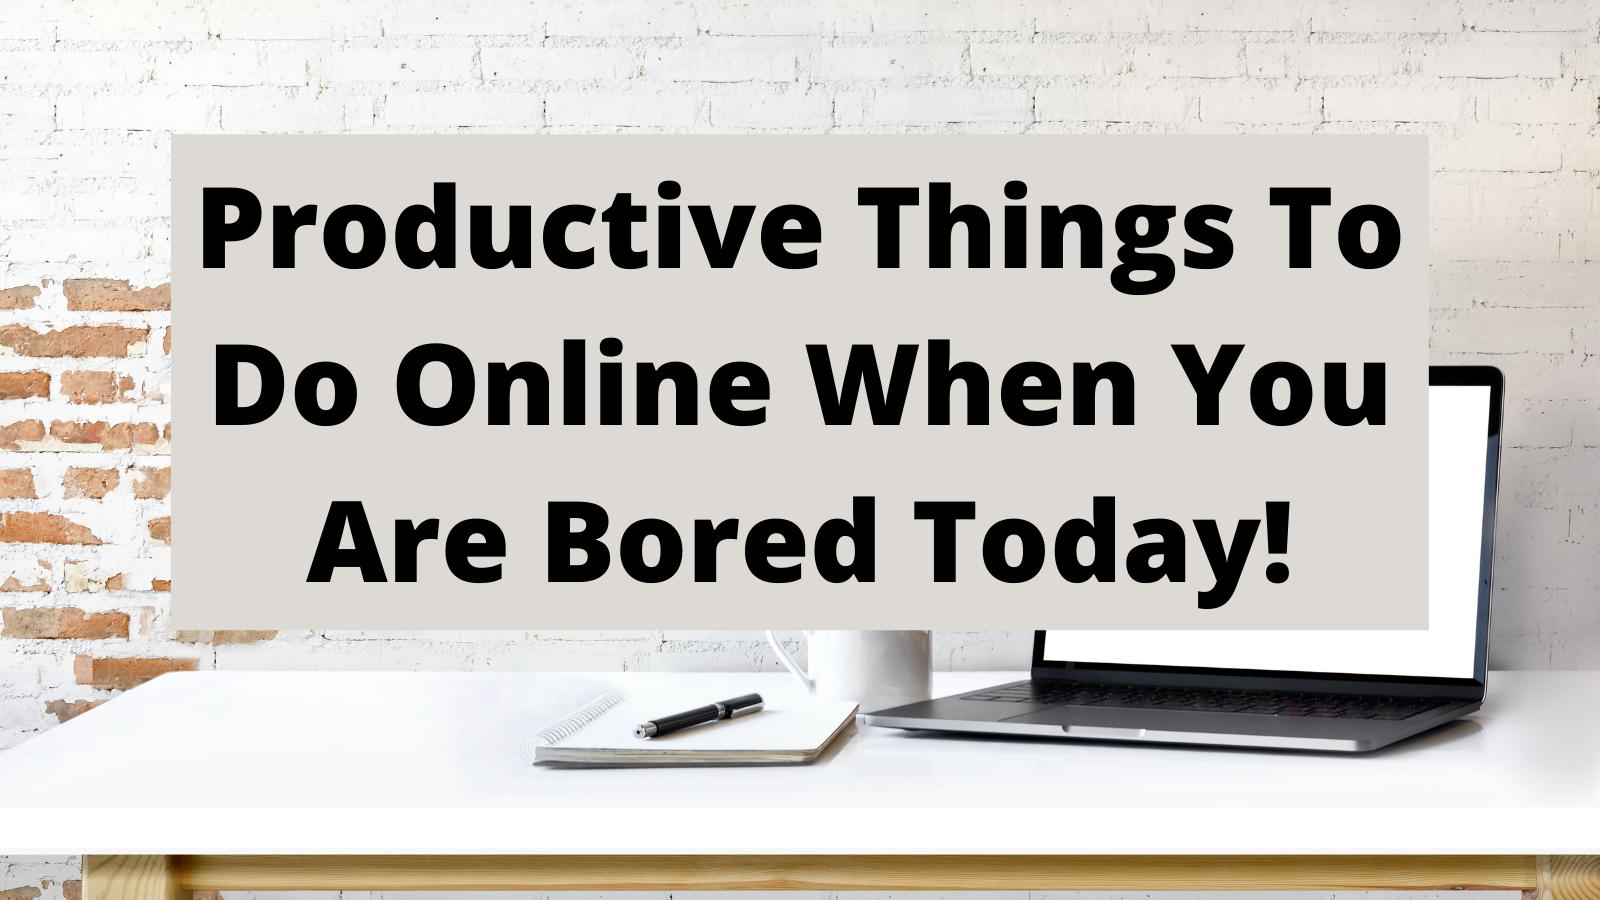 Productive Things To Do Online When You Are Bored Today!